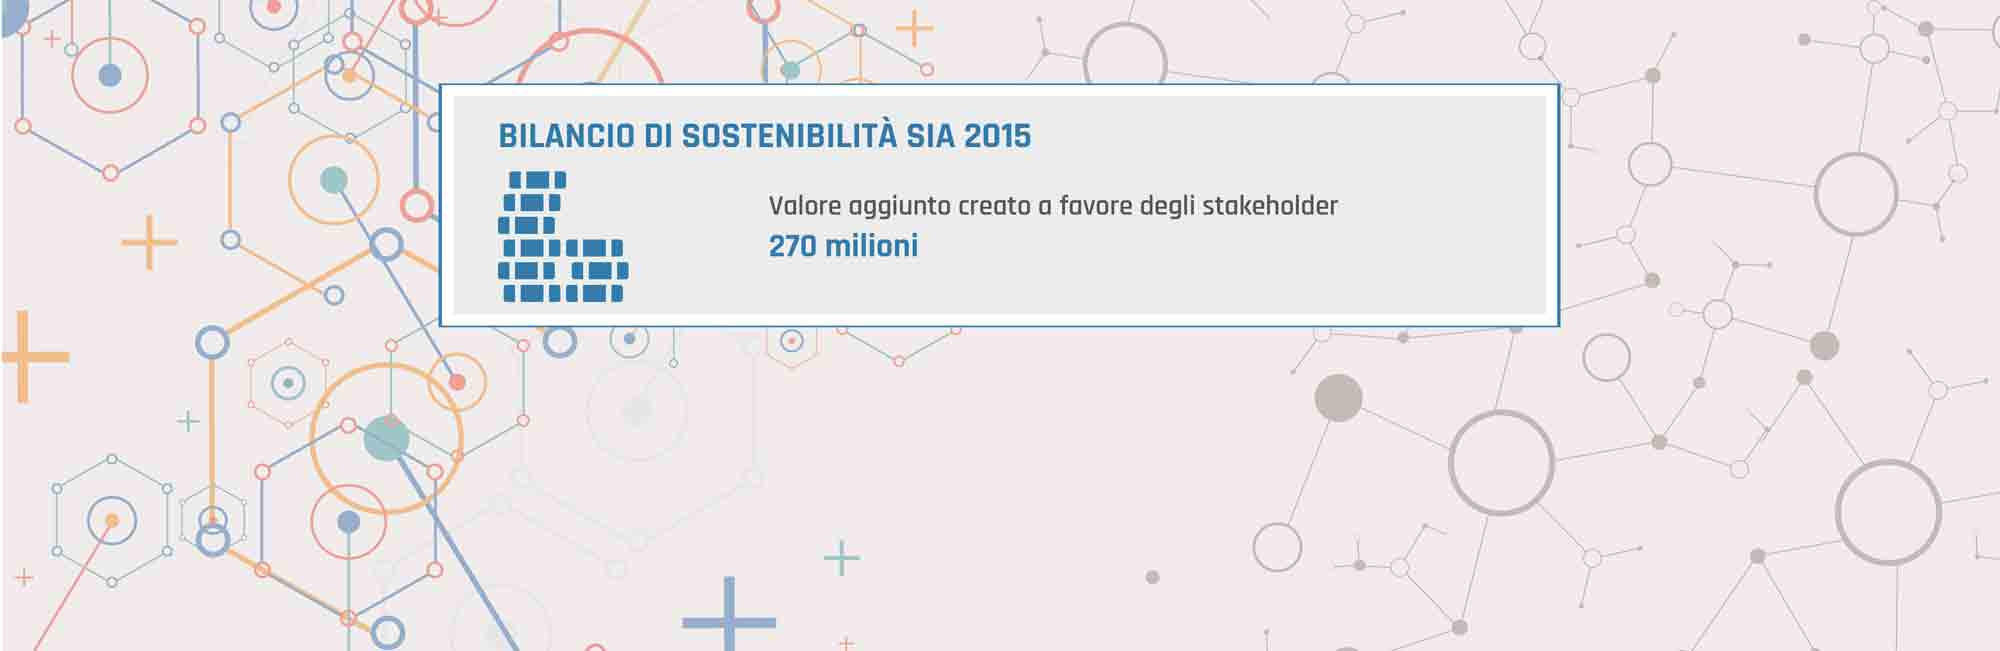 Briefing milano web graphic key figures SIA bilancio sostenibilità 2015-2